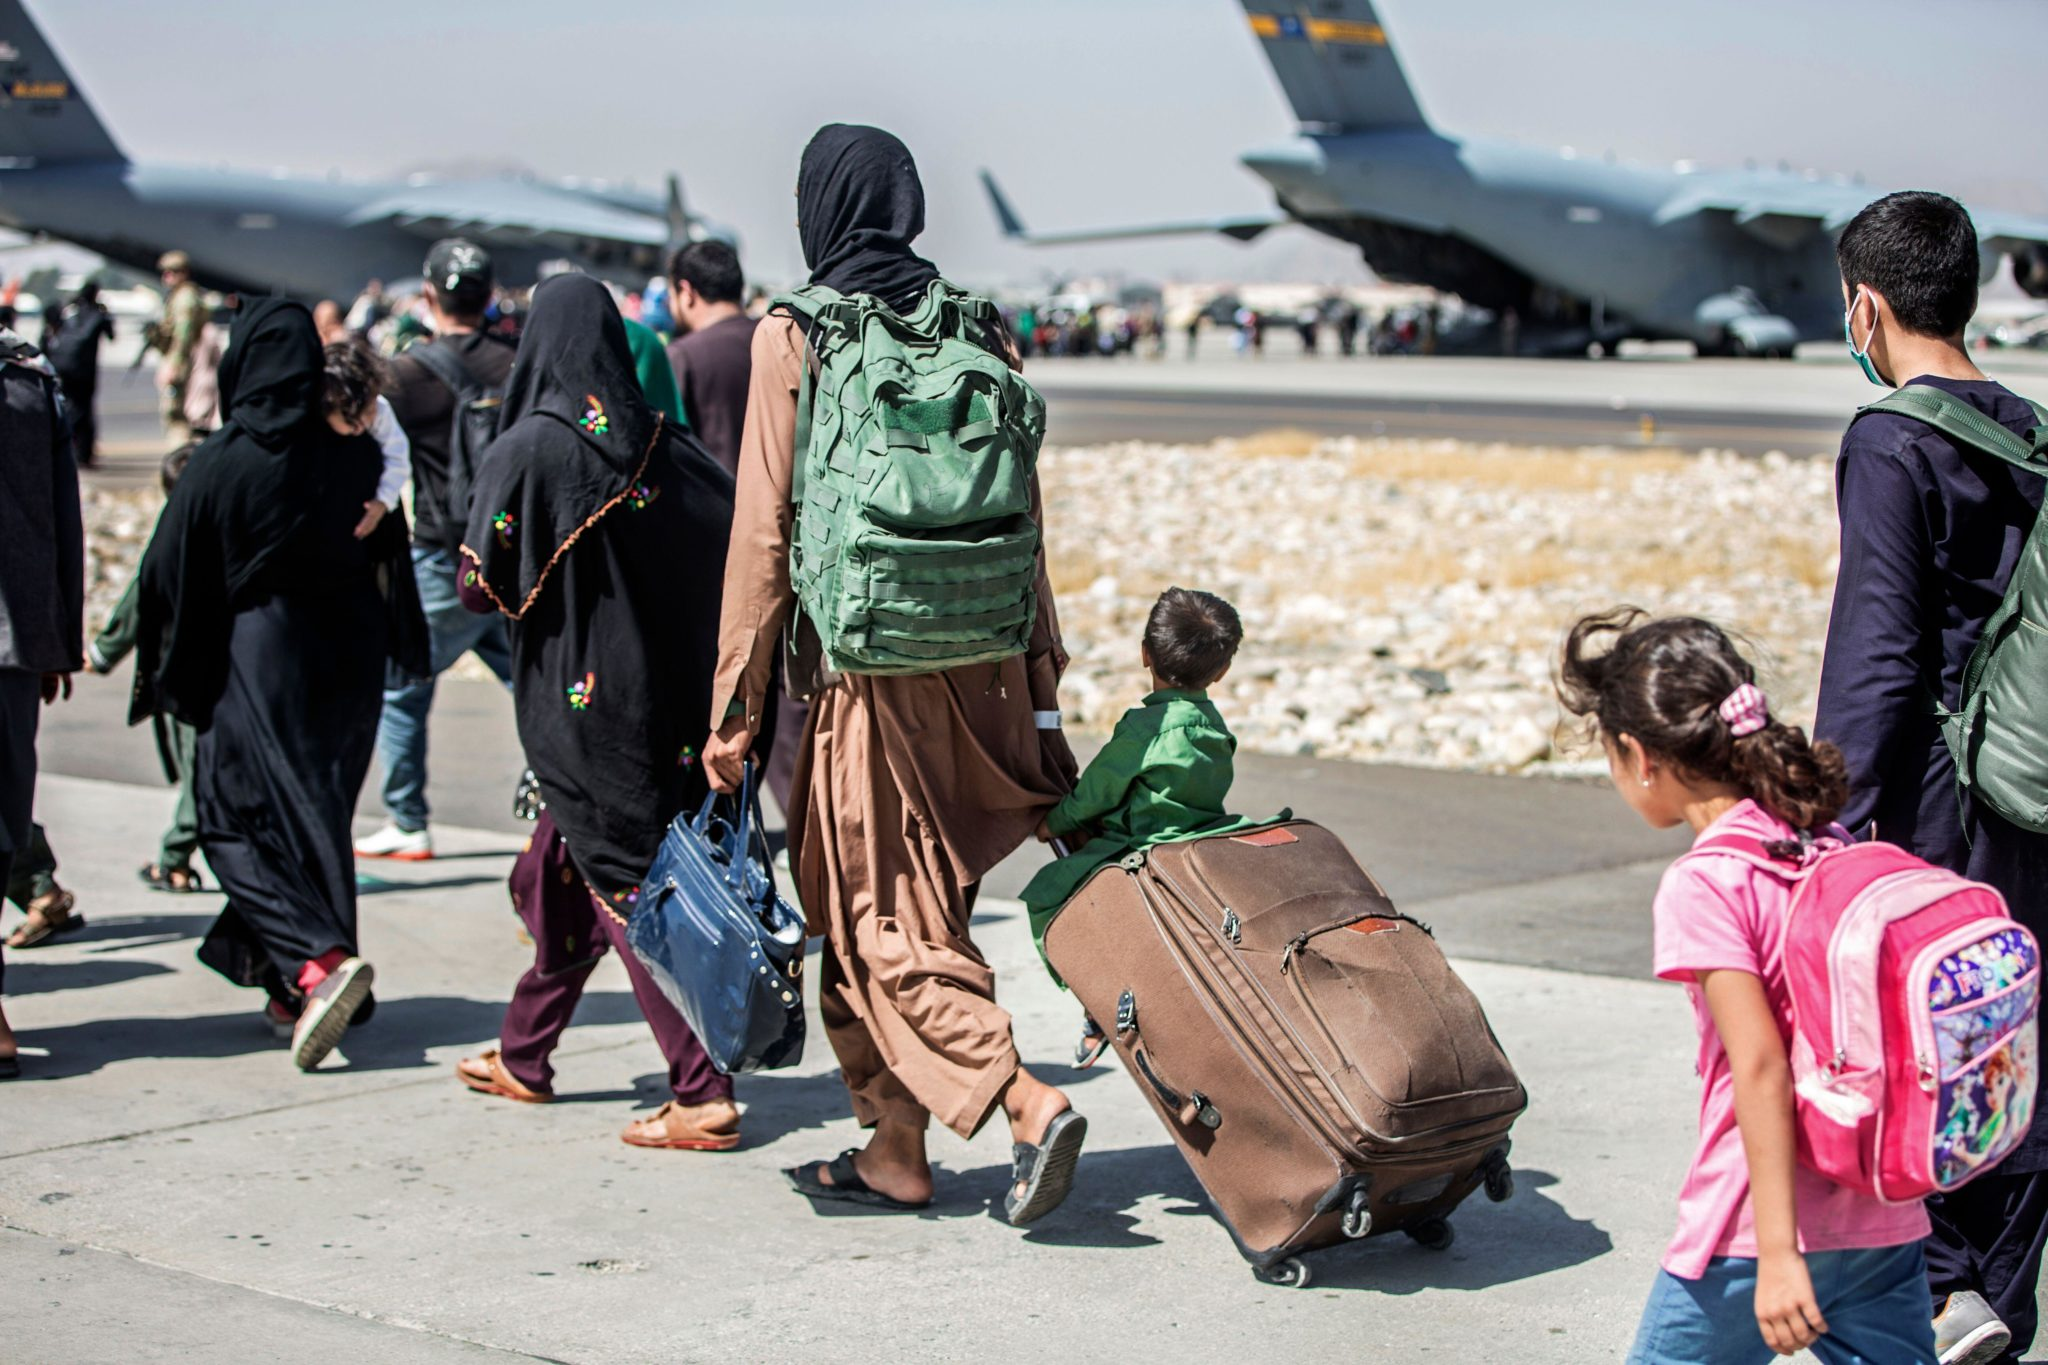 People prepare to board a flight during an evacuation at Hamid Karzai International Airport in Kabul, Afghanistan on August 24th, 2021